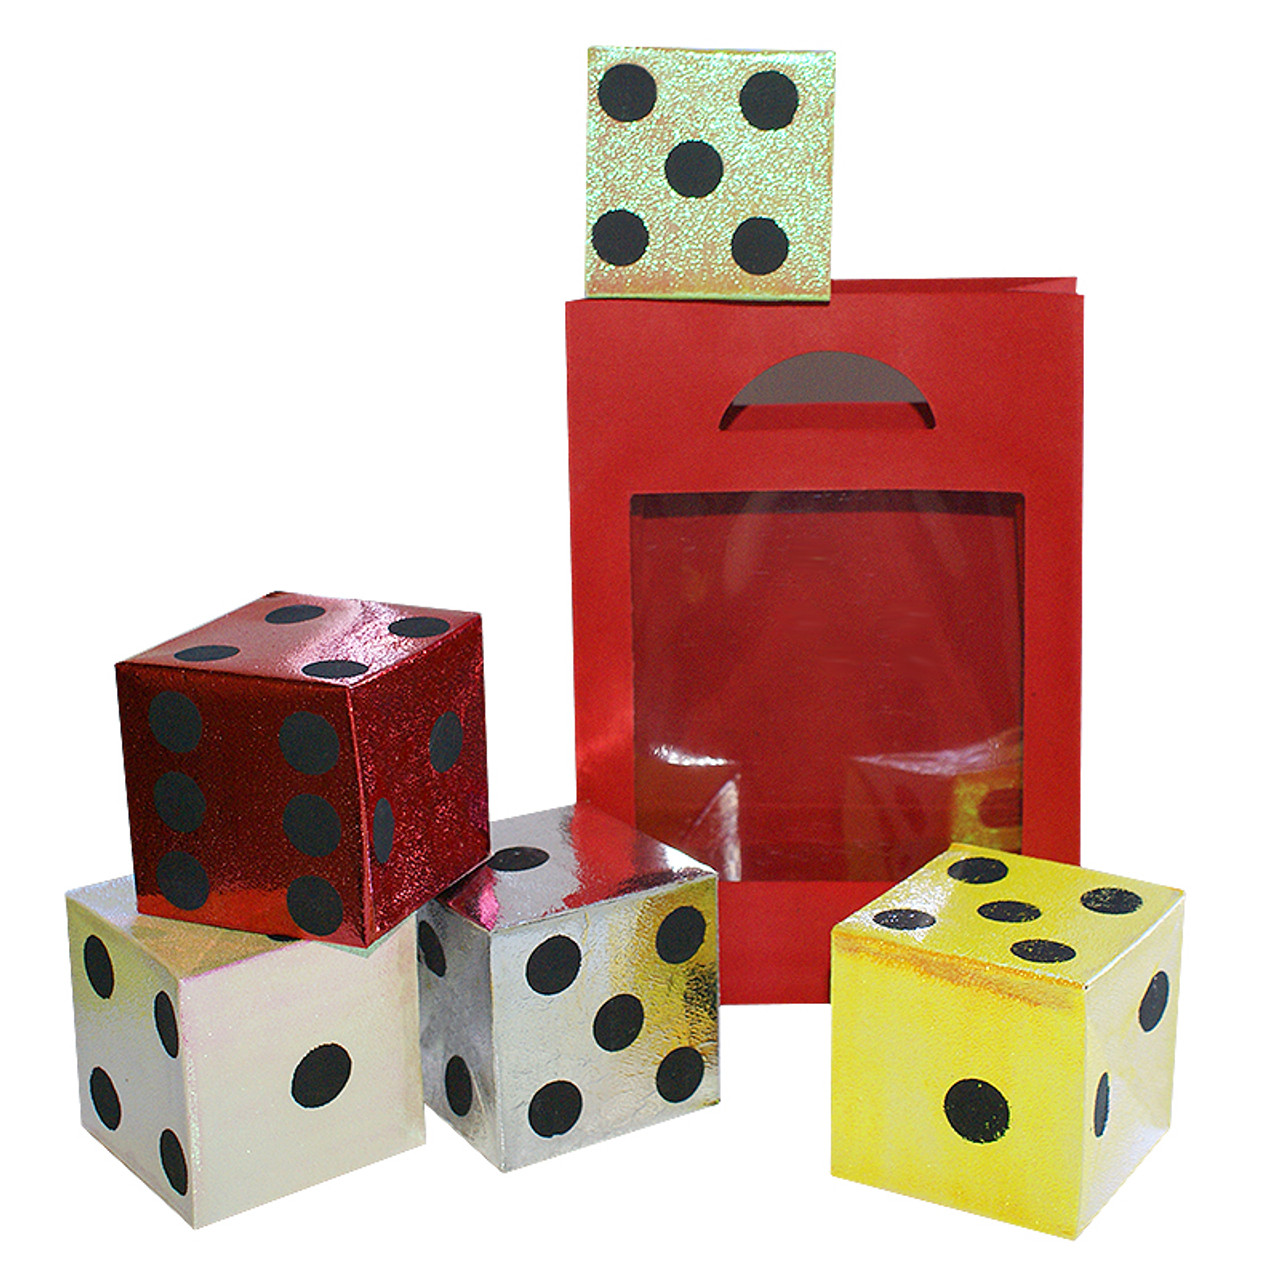 DiFatta Magic Trick Dice from Empty Bag Appearing Cubes